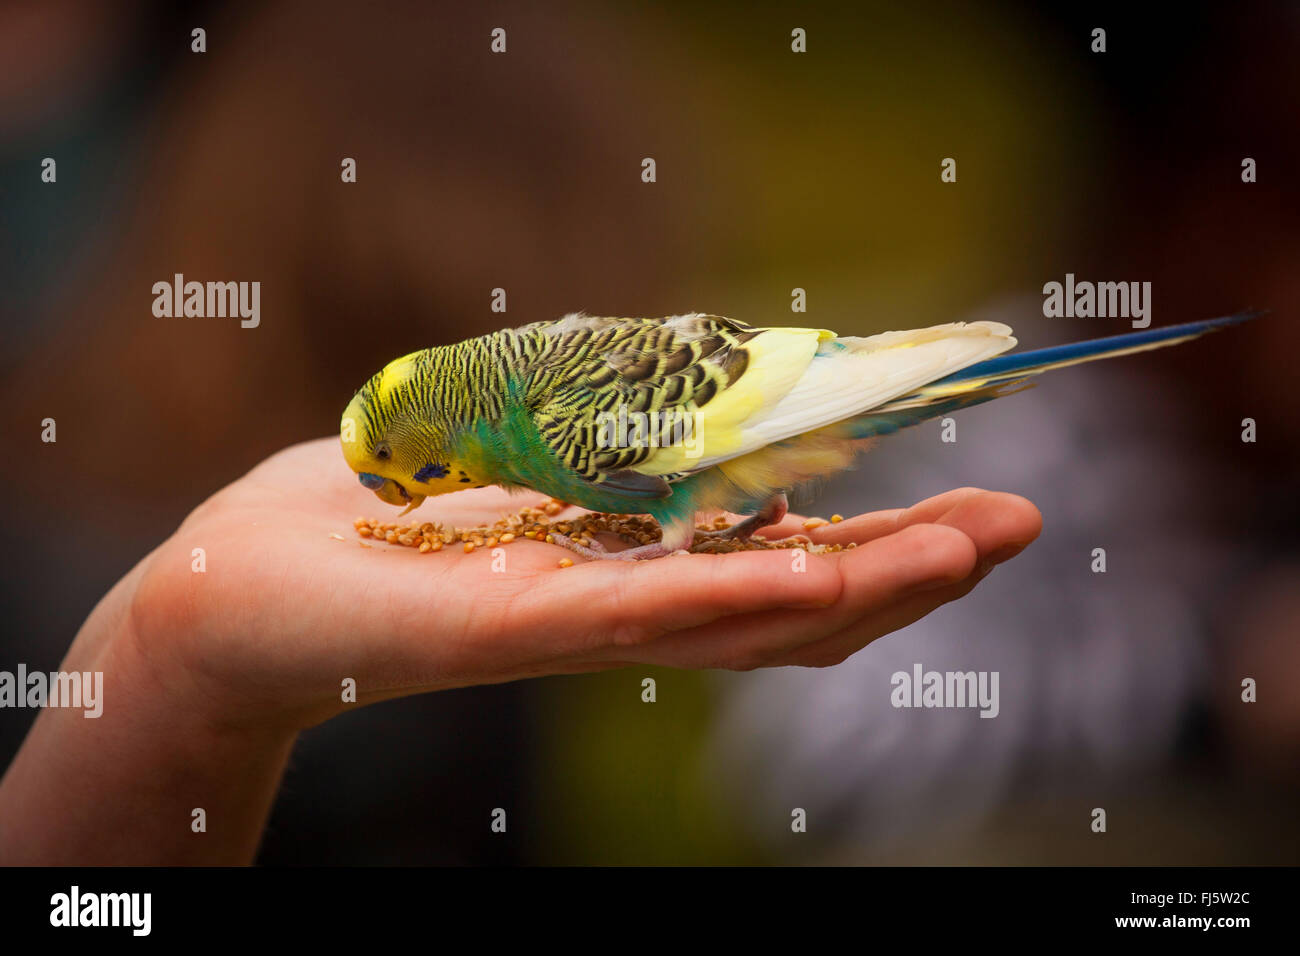 budgerigar, budgie, parakeet (Melopsittacus undulatus), gentle budgie sitting on a hand and feeding, side view - Stock Image